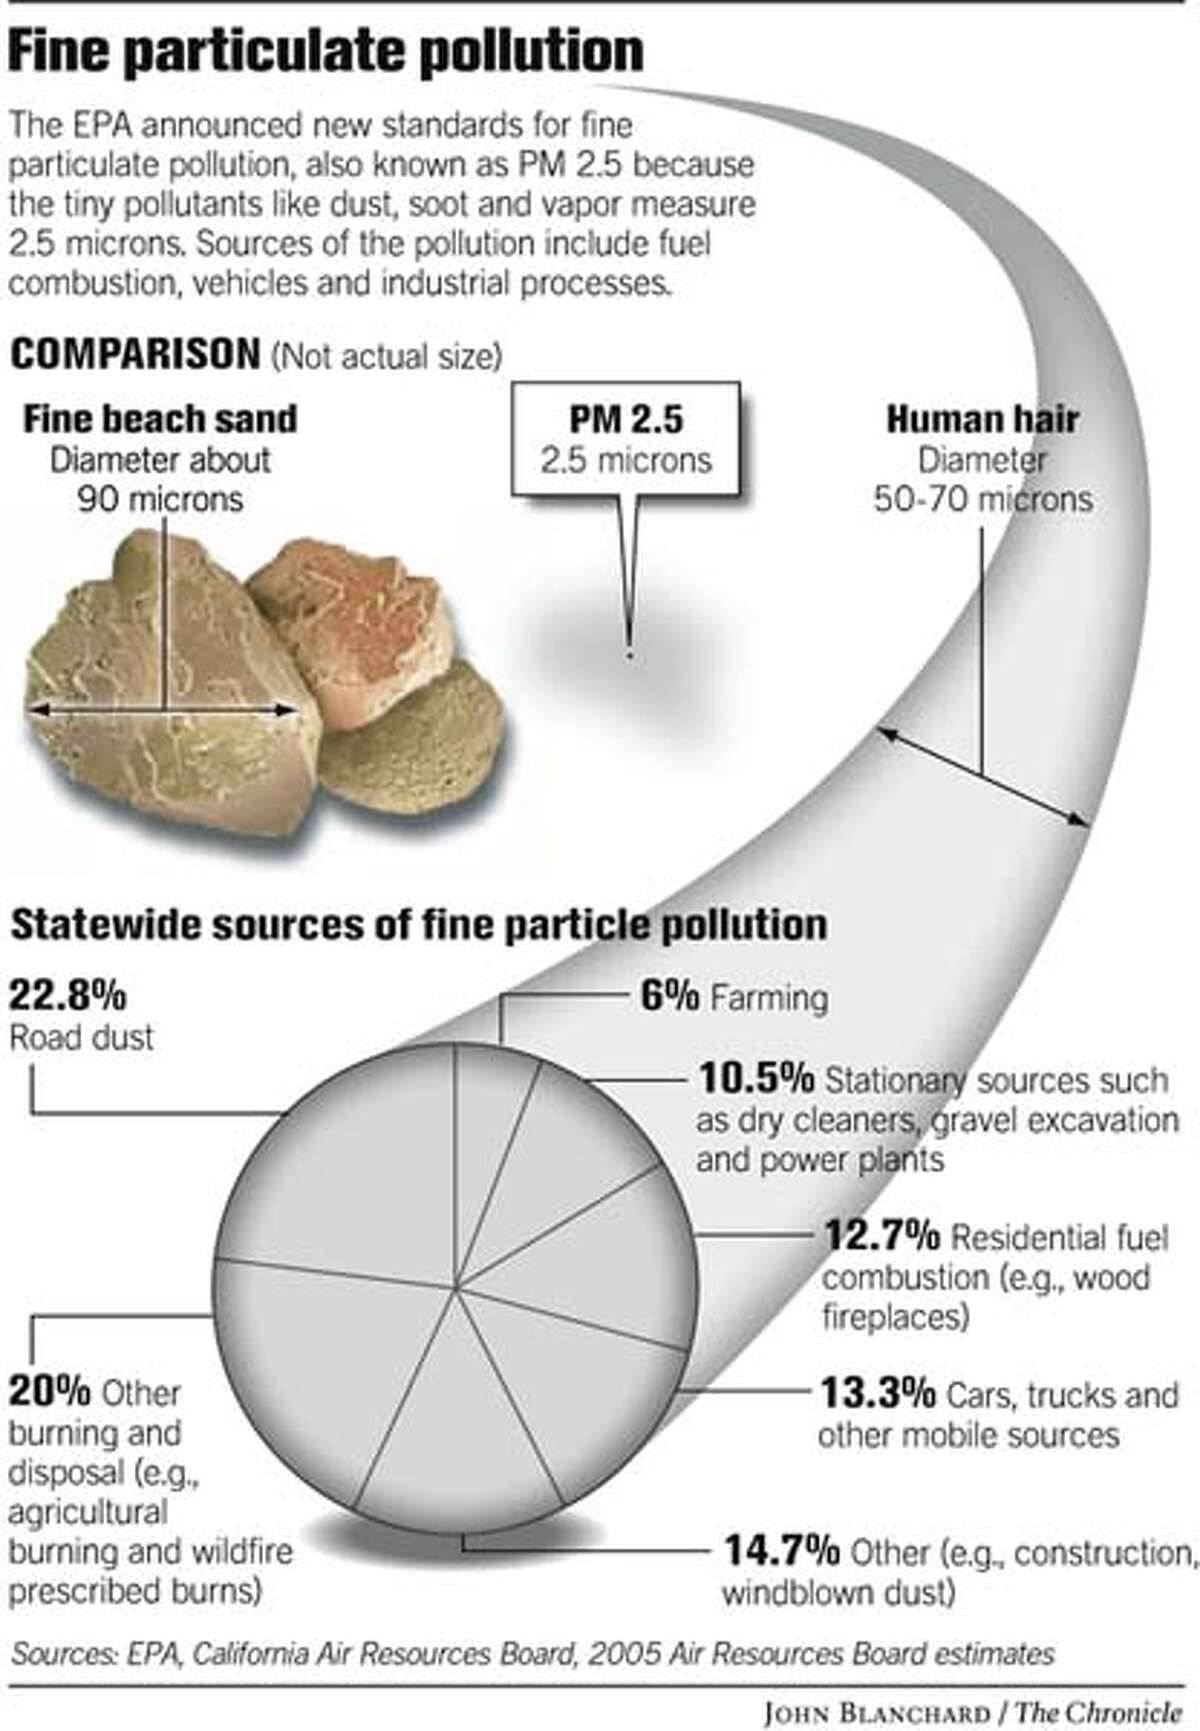 Fine Particulate Pollution. Chronicle graphic by John Blanchard